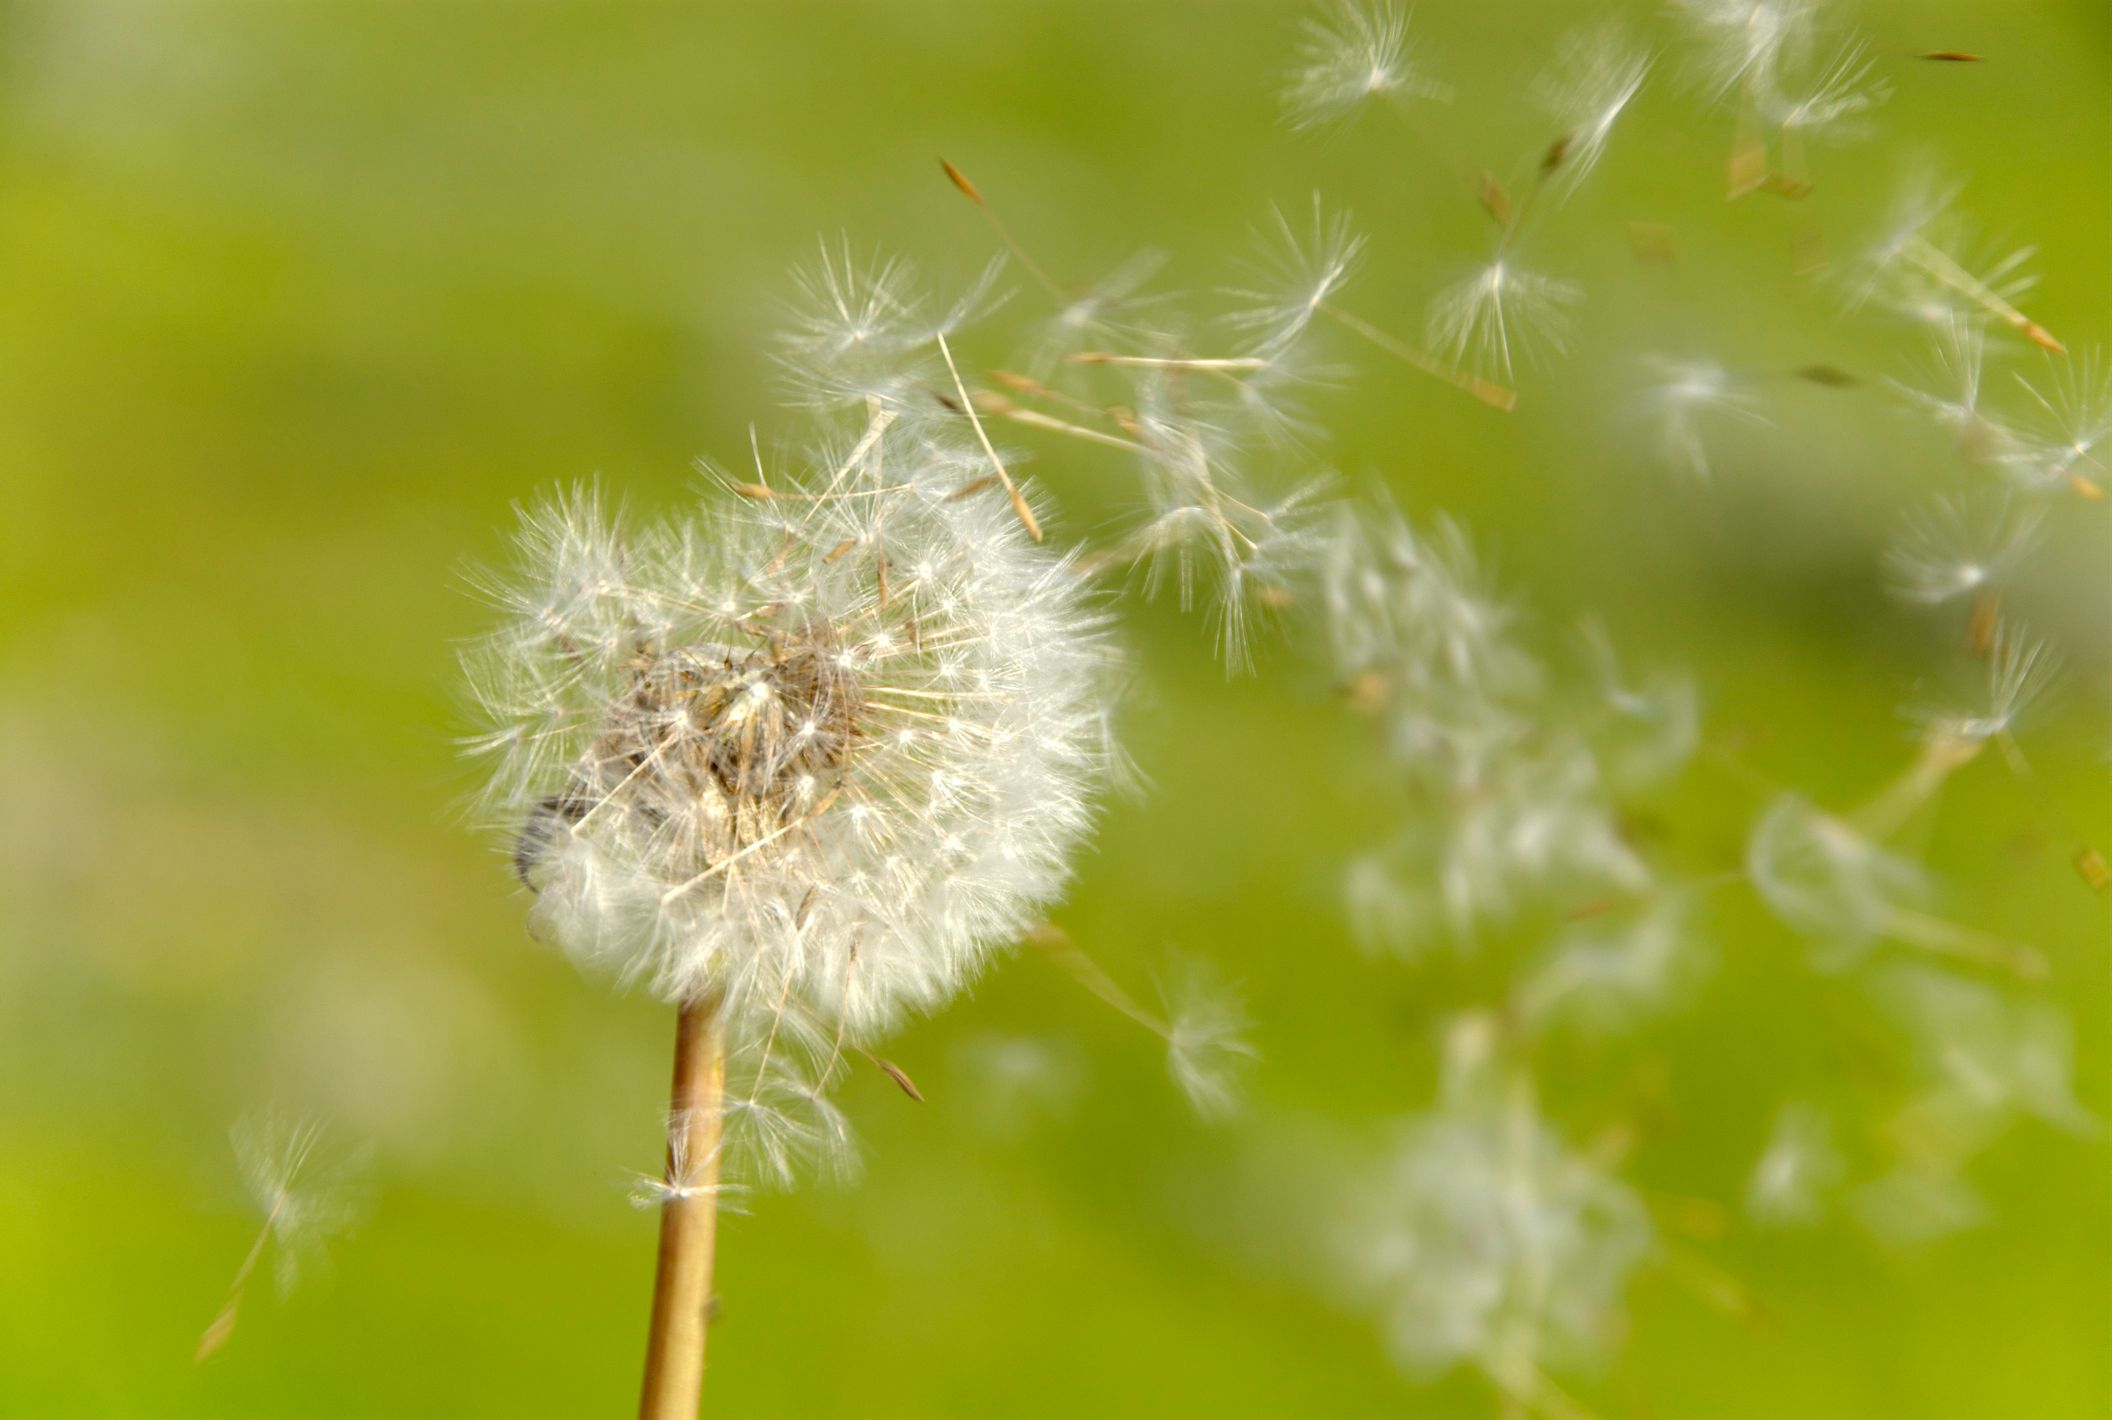 How to Remove or Kill Dandelions